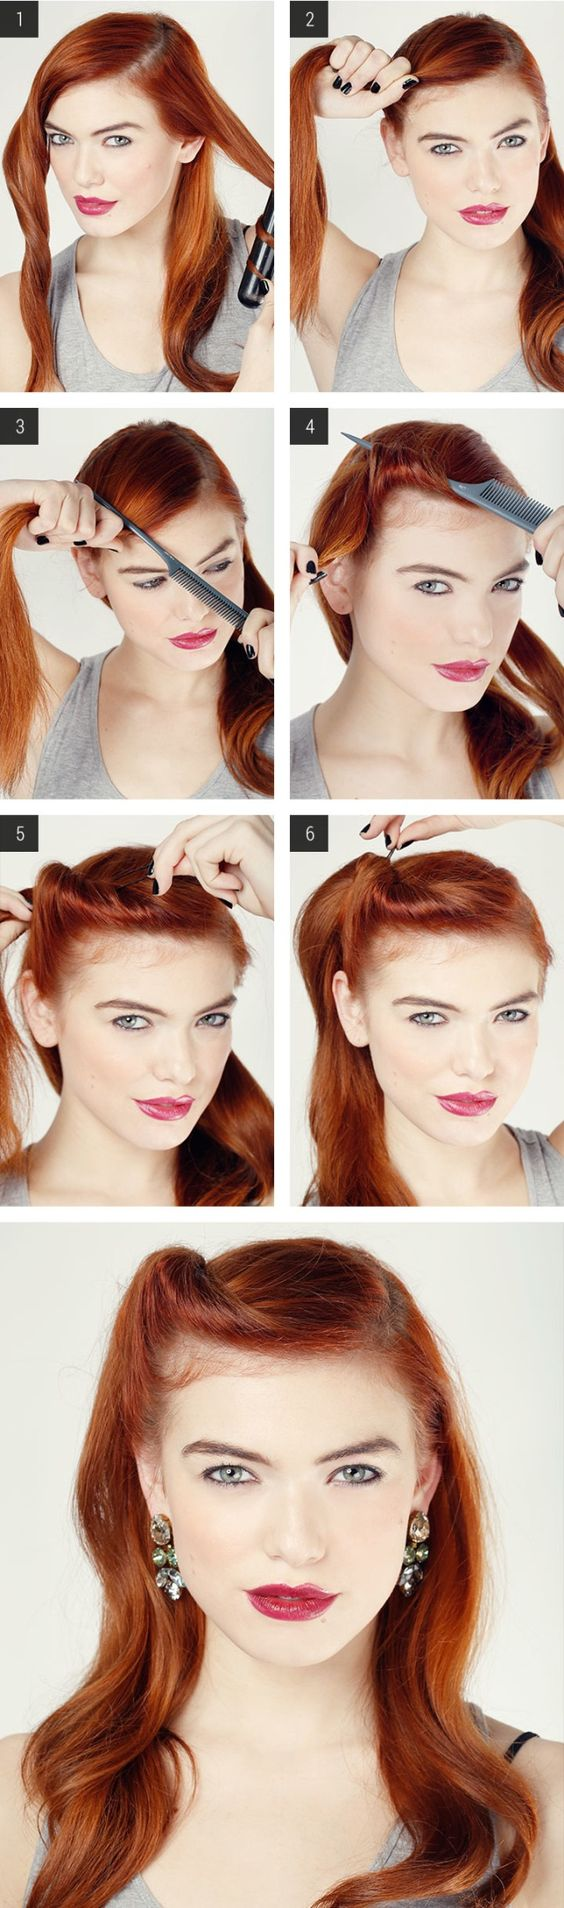 20 Elegant Retro Hairstyles 2017 Vintage Hairstyles For